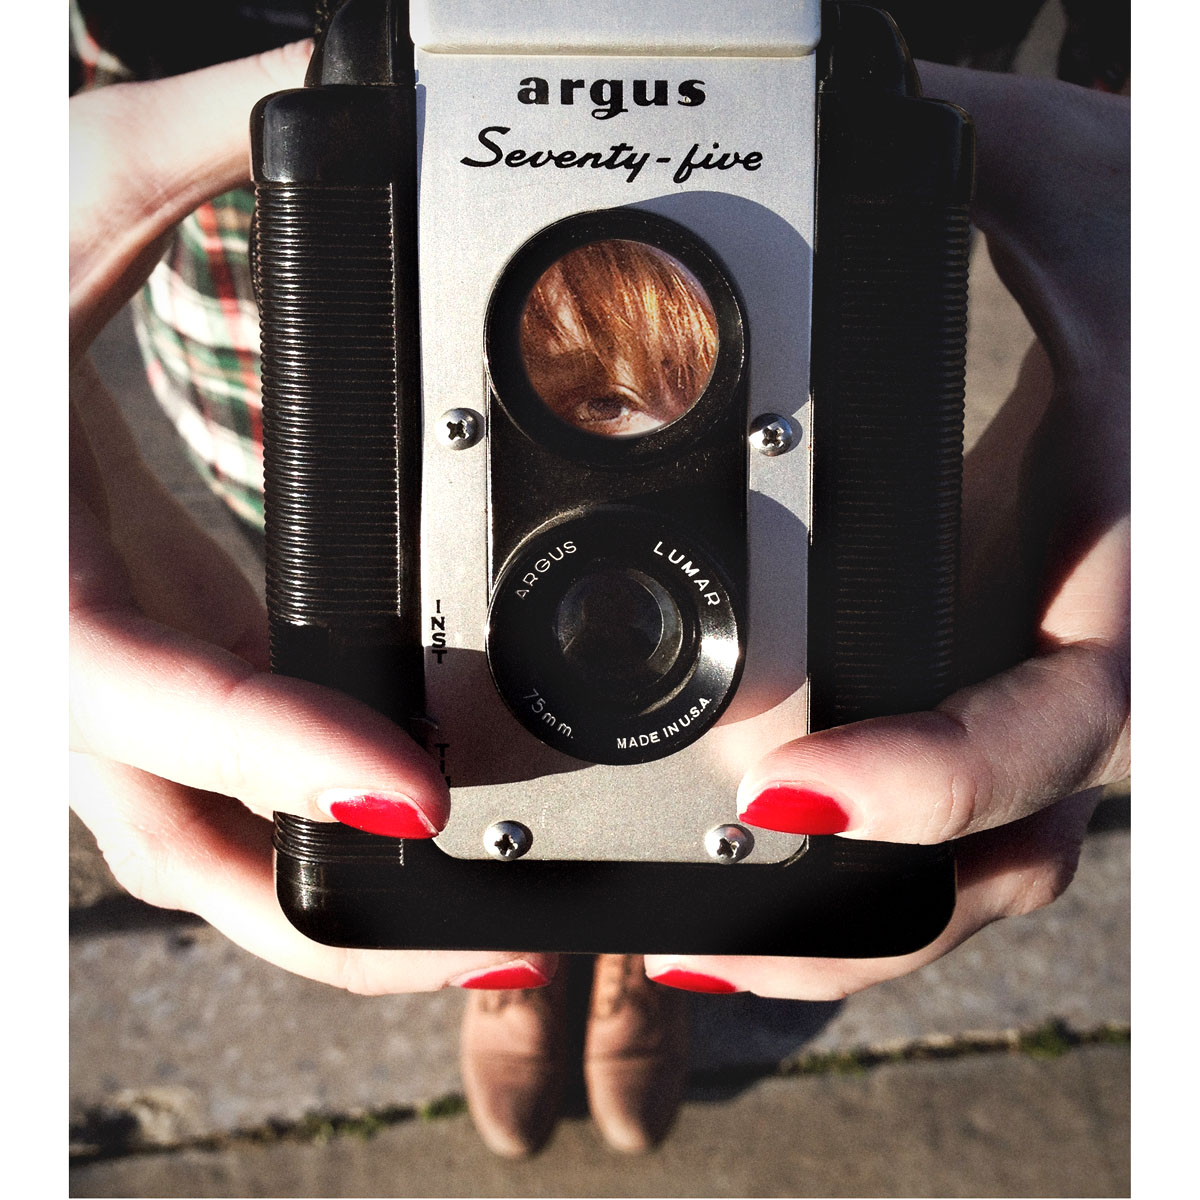 We're in the habit of going over to Denton Camera Exchange to build our vintage camera collection. We wish there were prices on the actual products, but they've got an awesome selection.